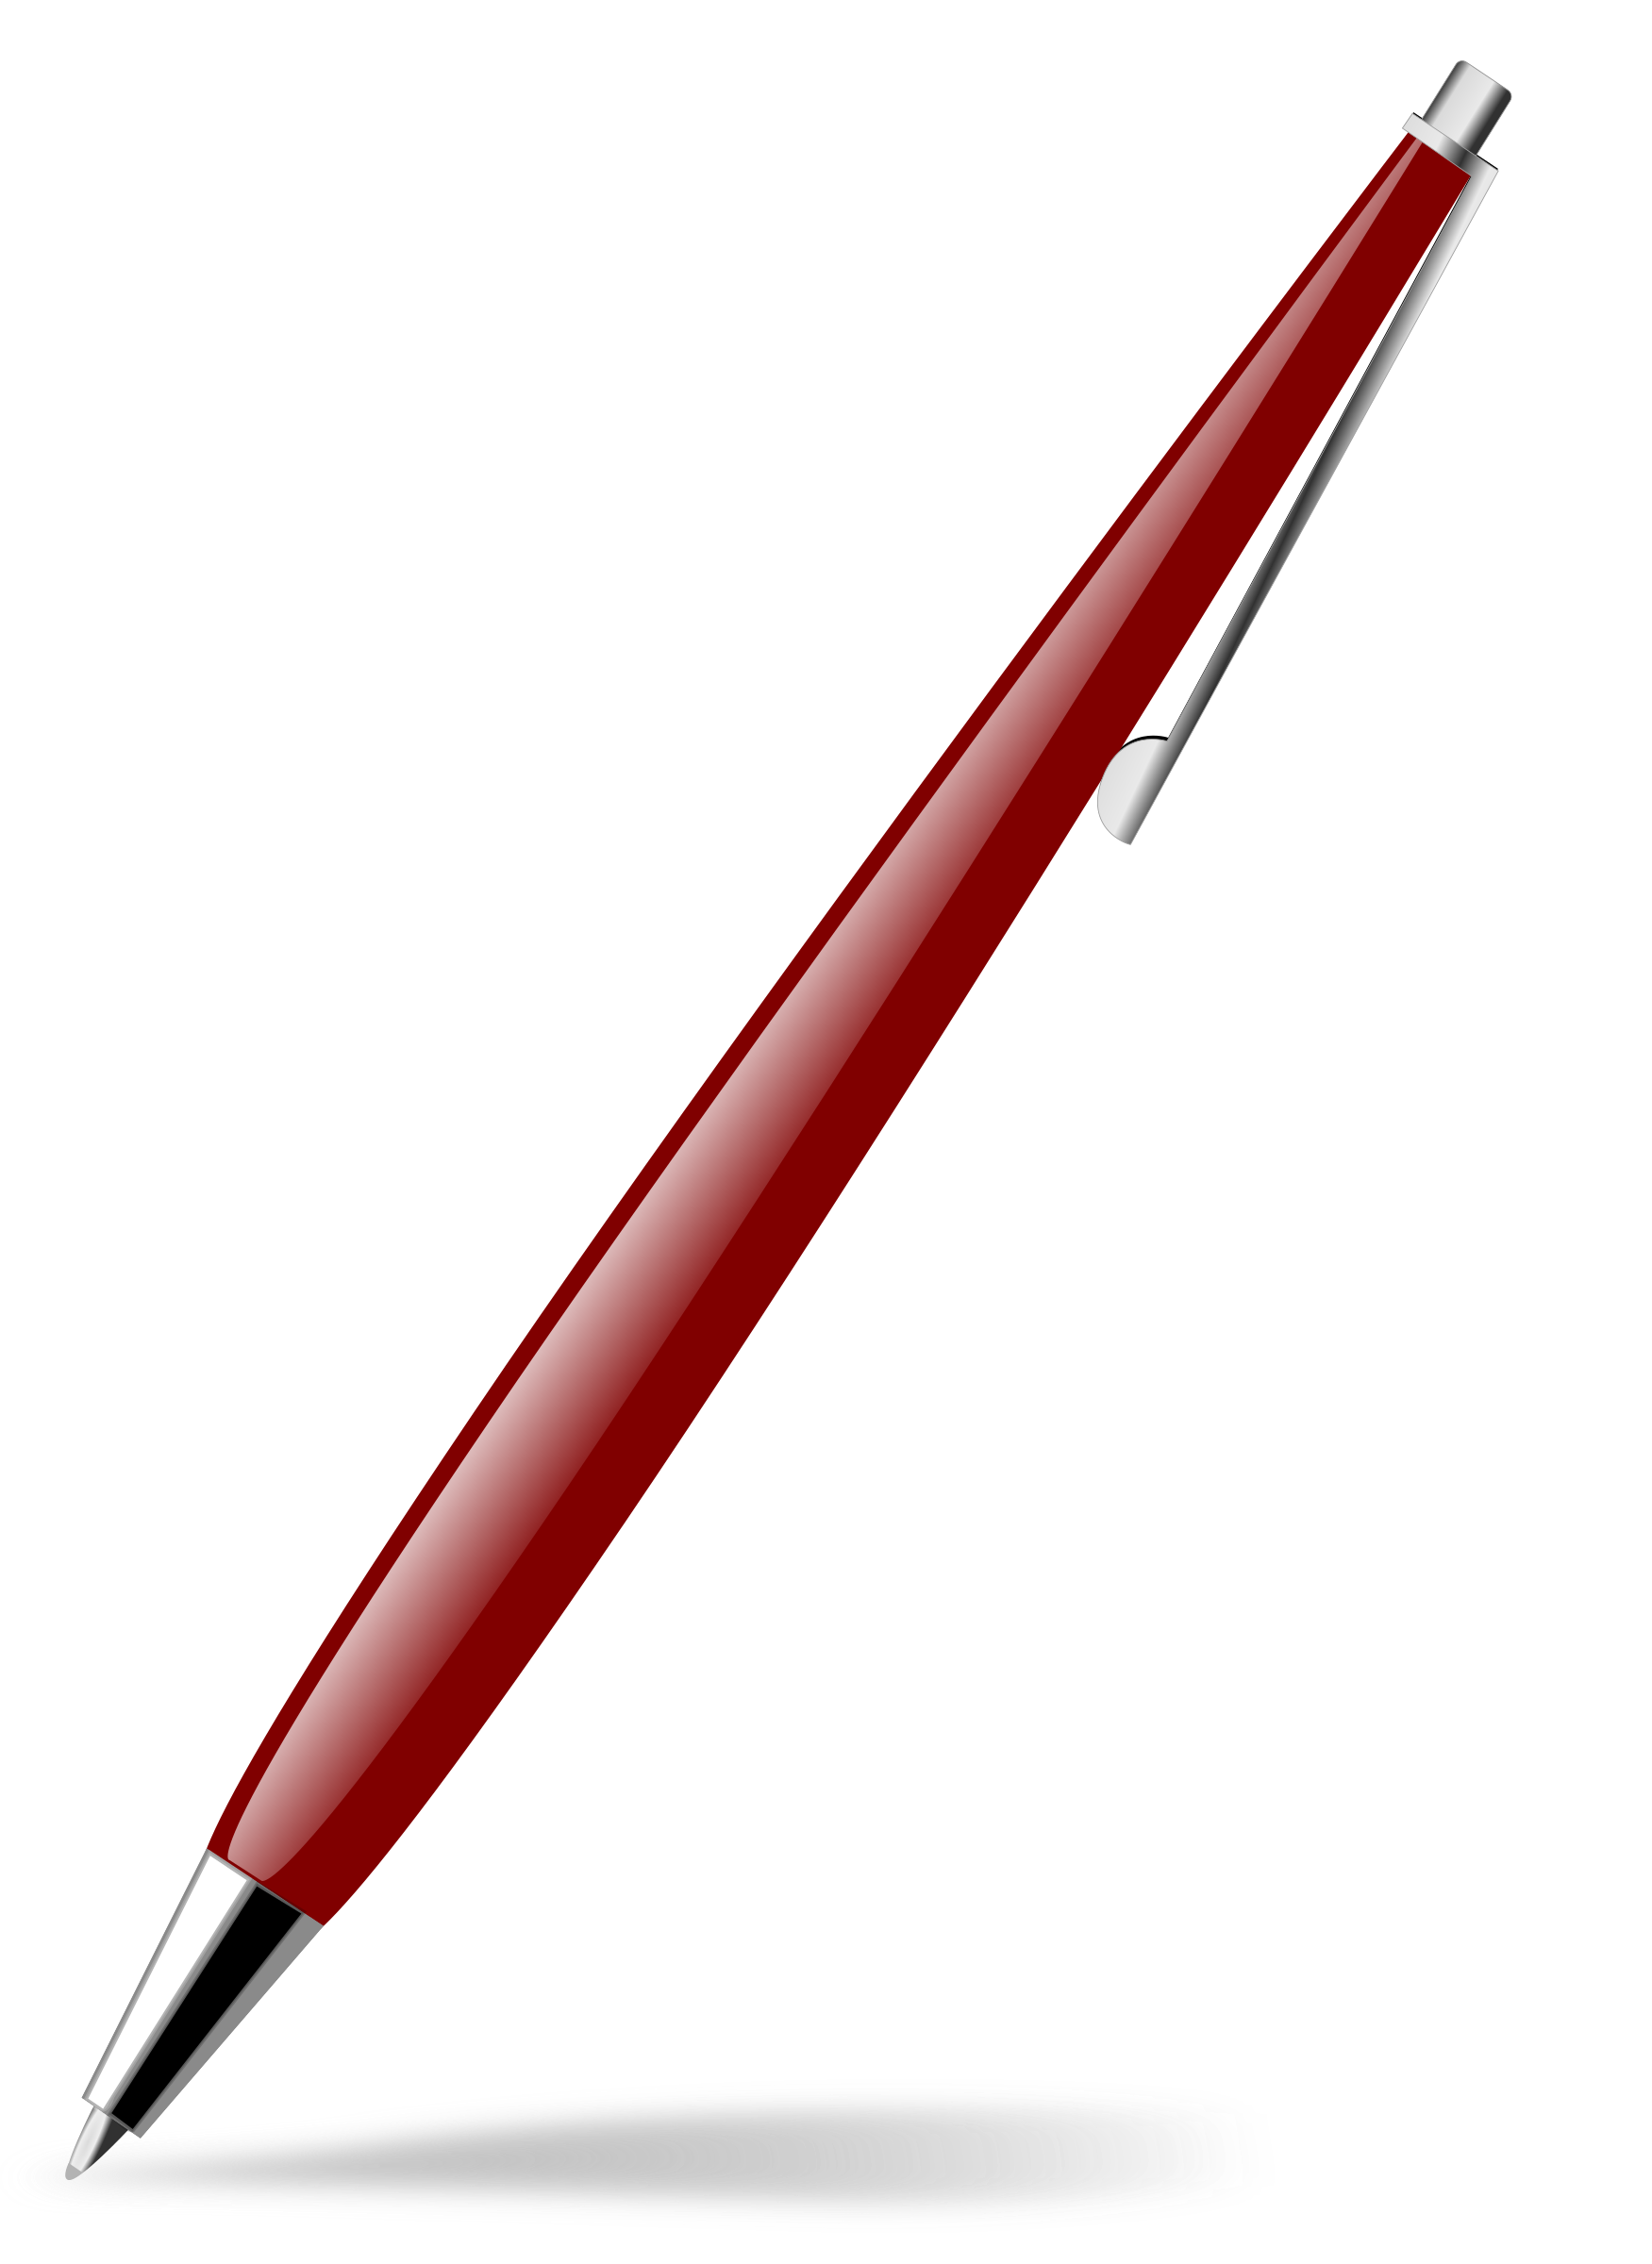 red glossy pen by Chrisdesign